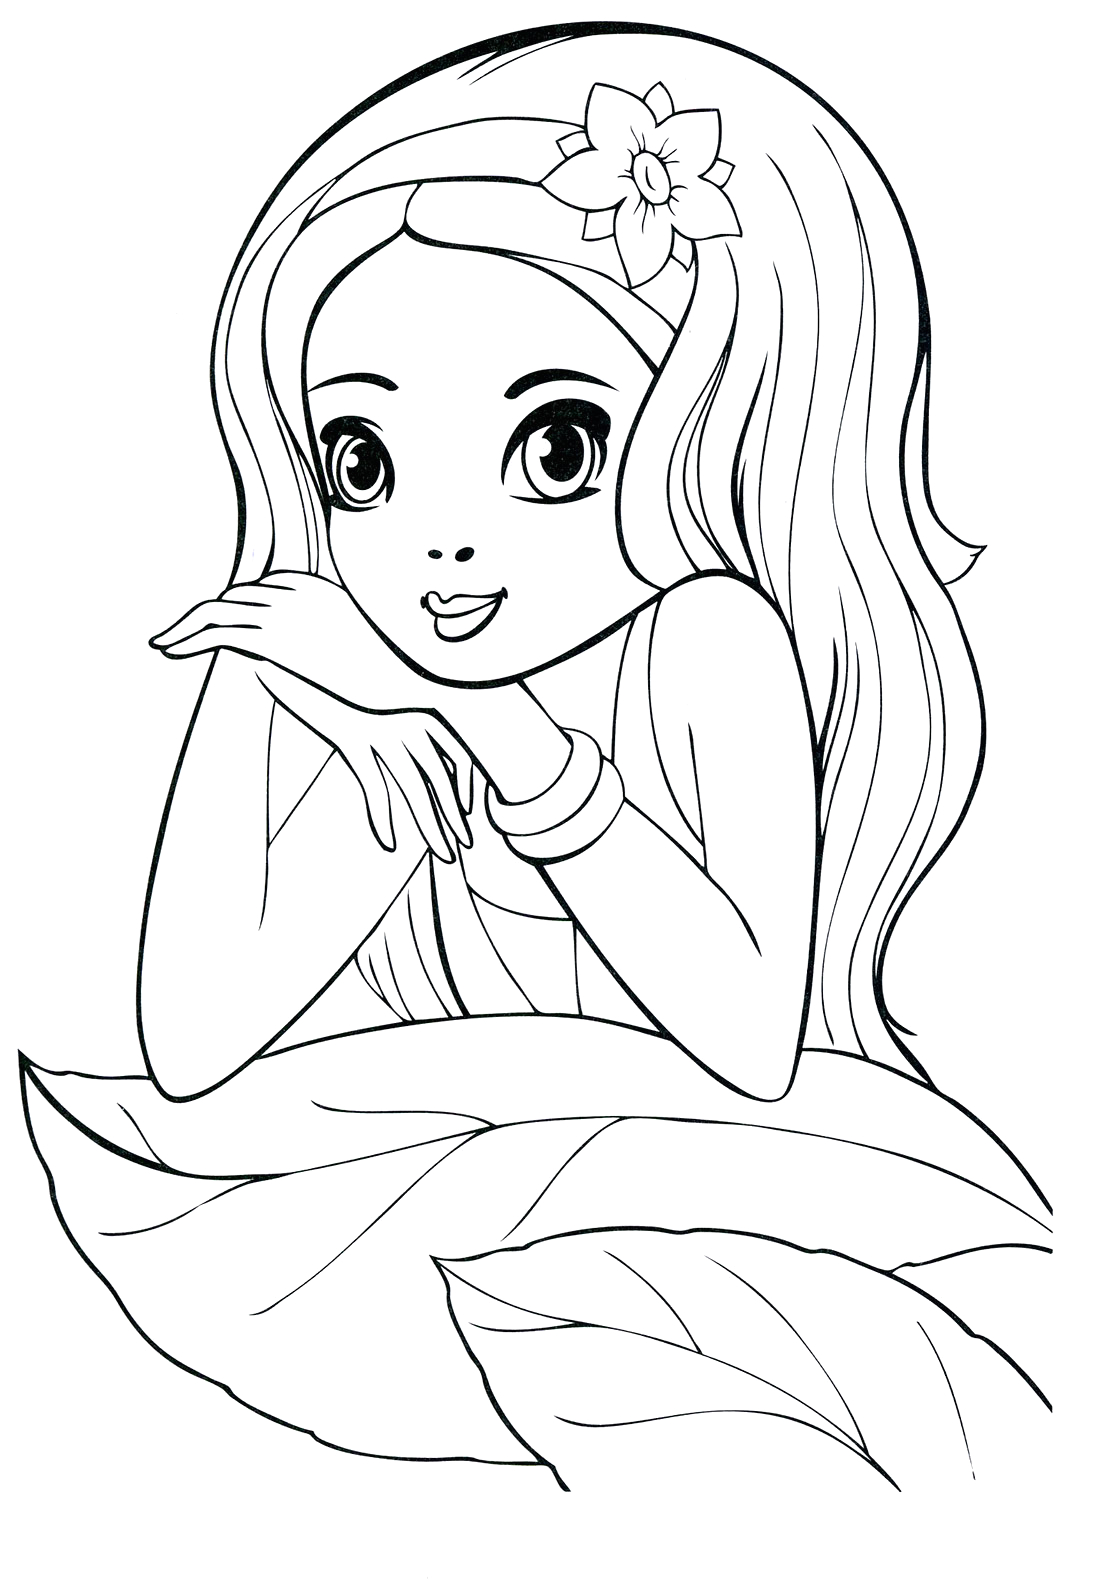 Coloring Pages for 9 to 10 Year Olds Coloring Pages for 8 9 10 Year Old Girls to and